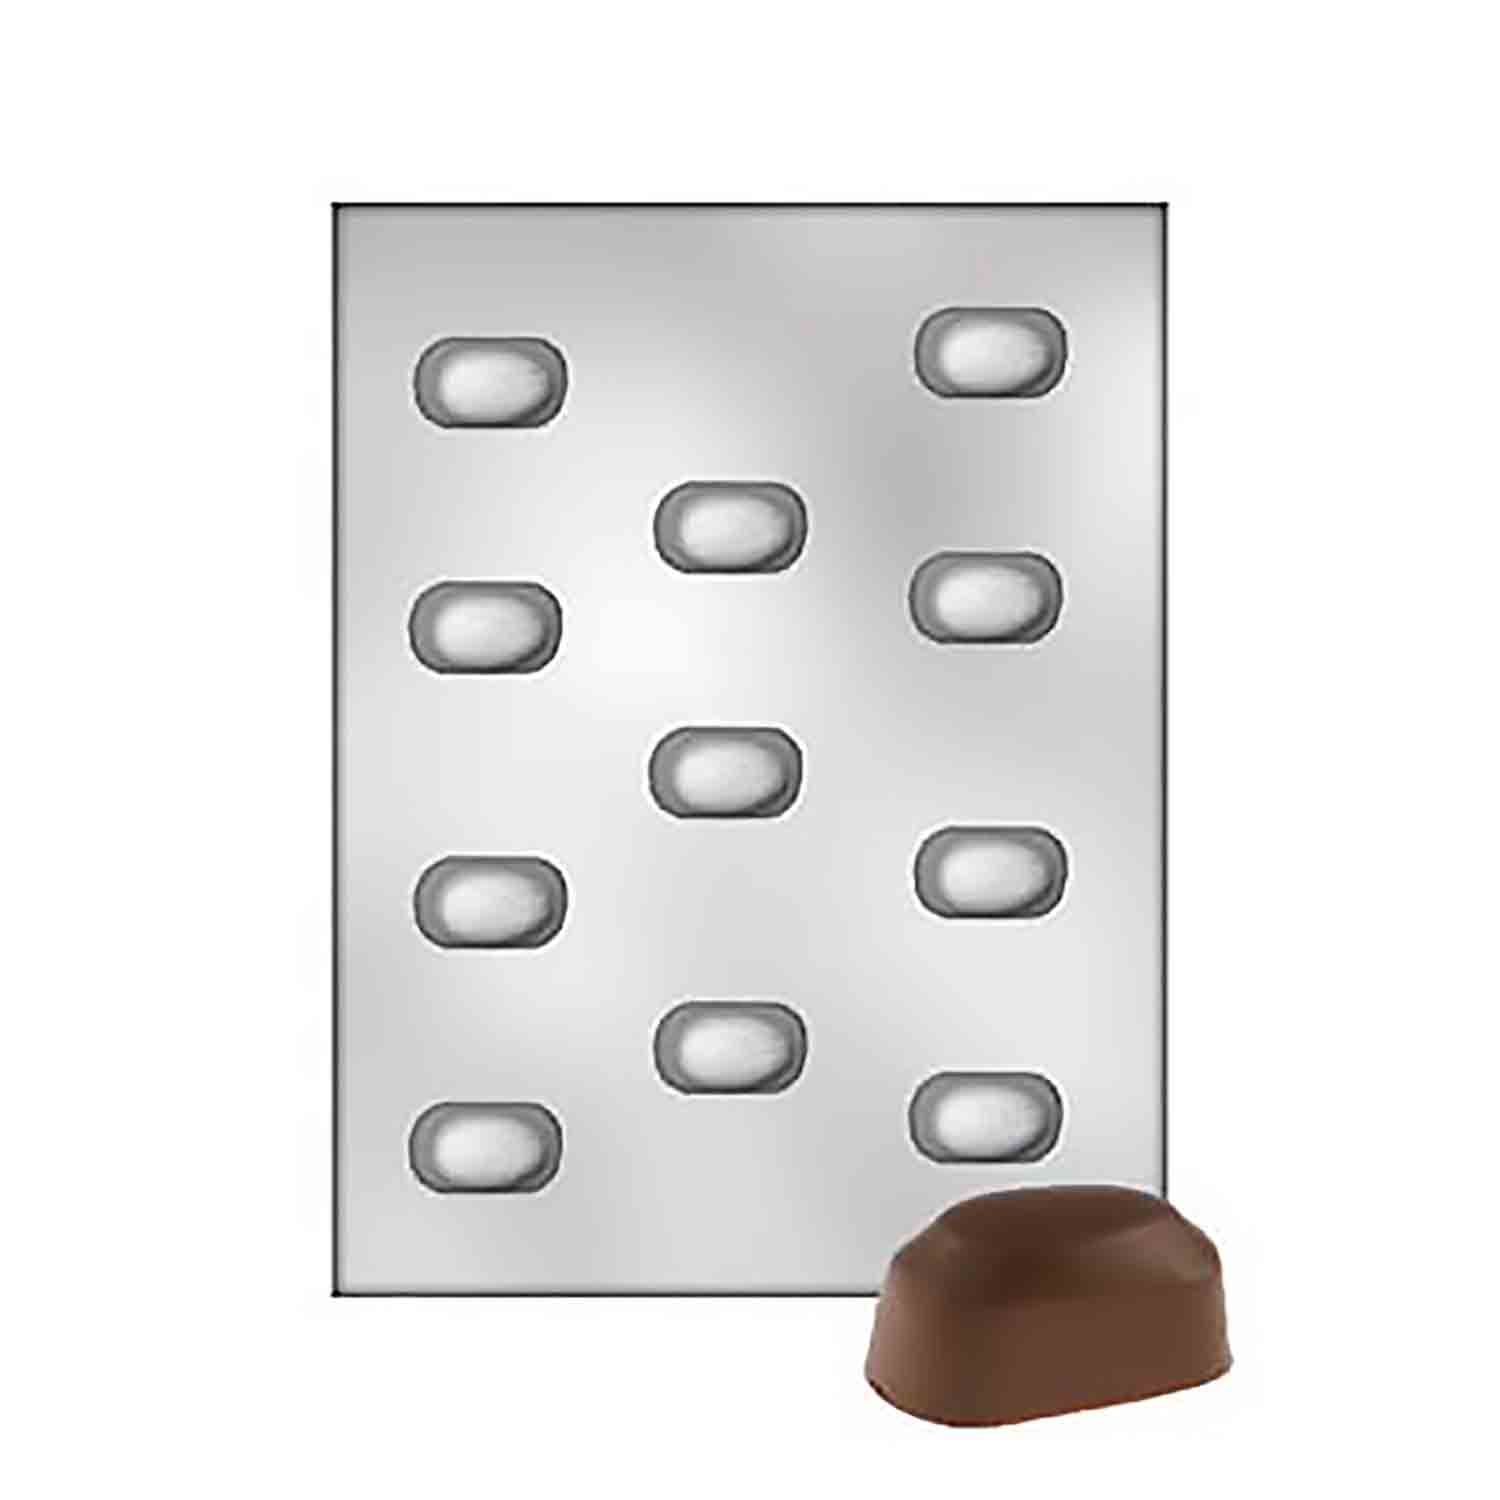 Almond Nibbles Chocolate Candy Mold